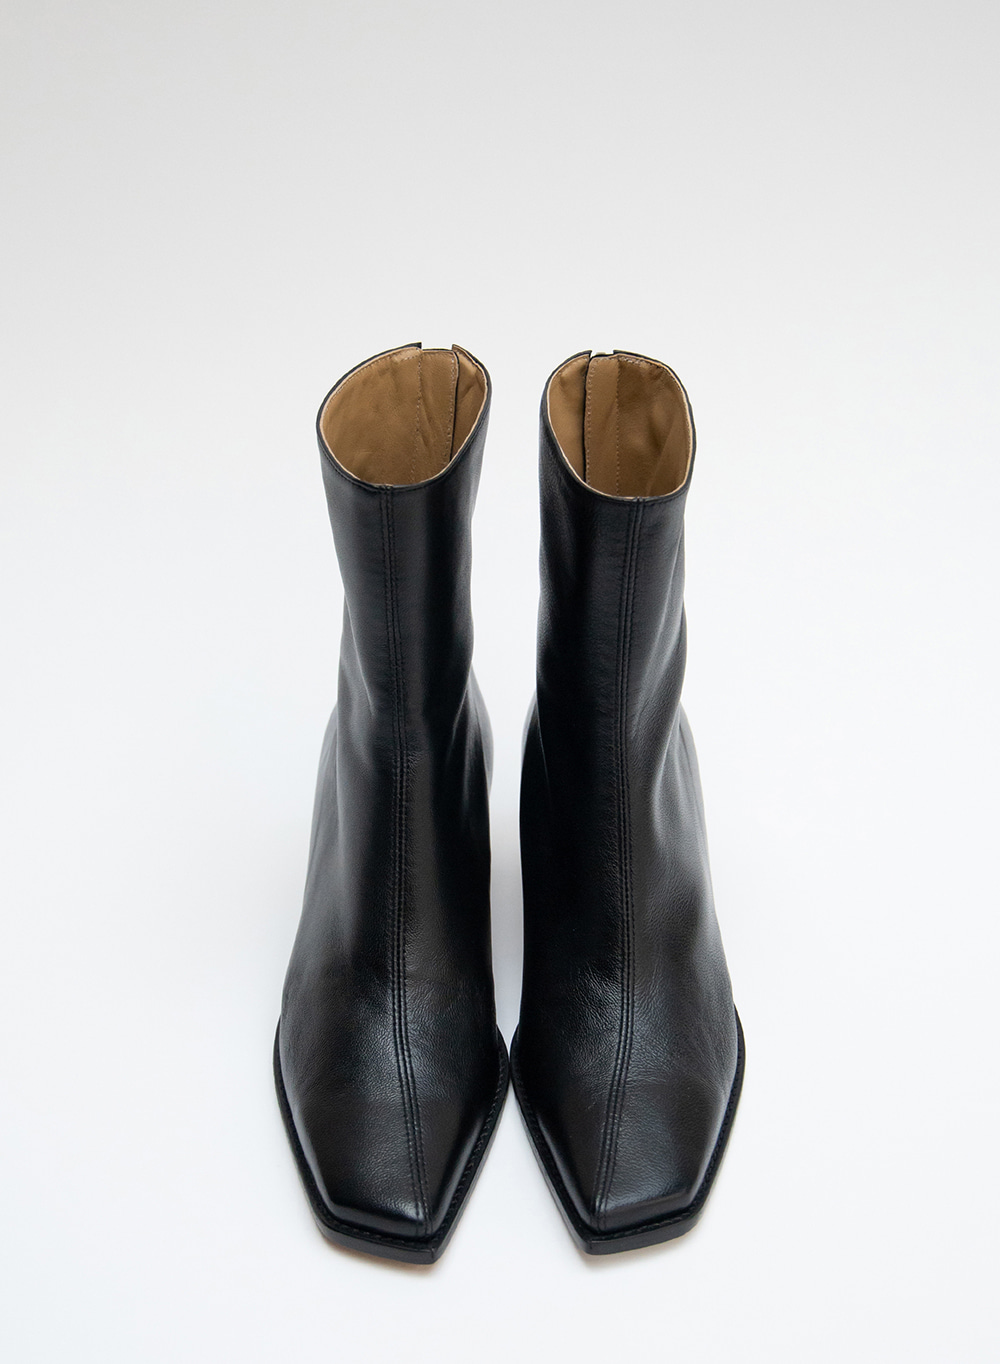 FW20 누 오블리크 Nuoy Oblique Ankleboots Black